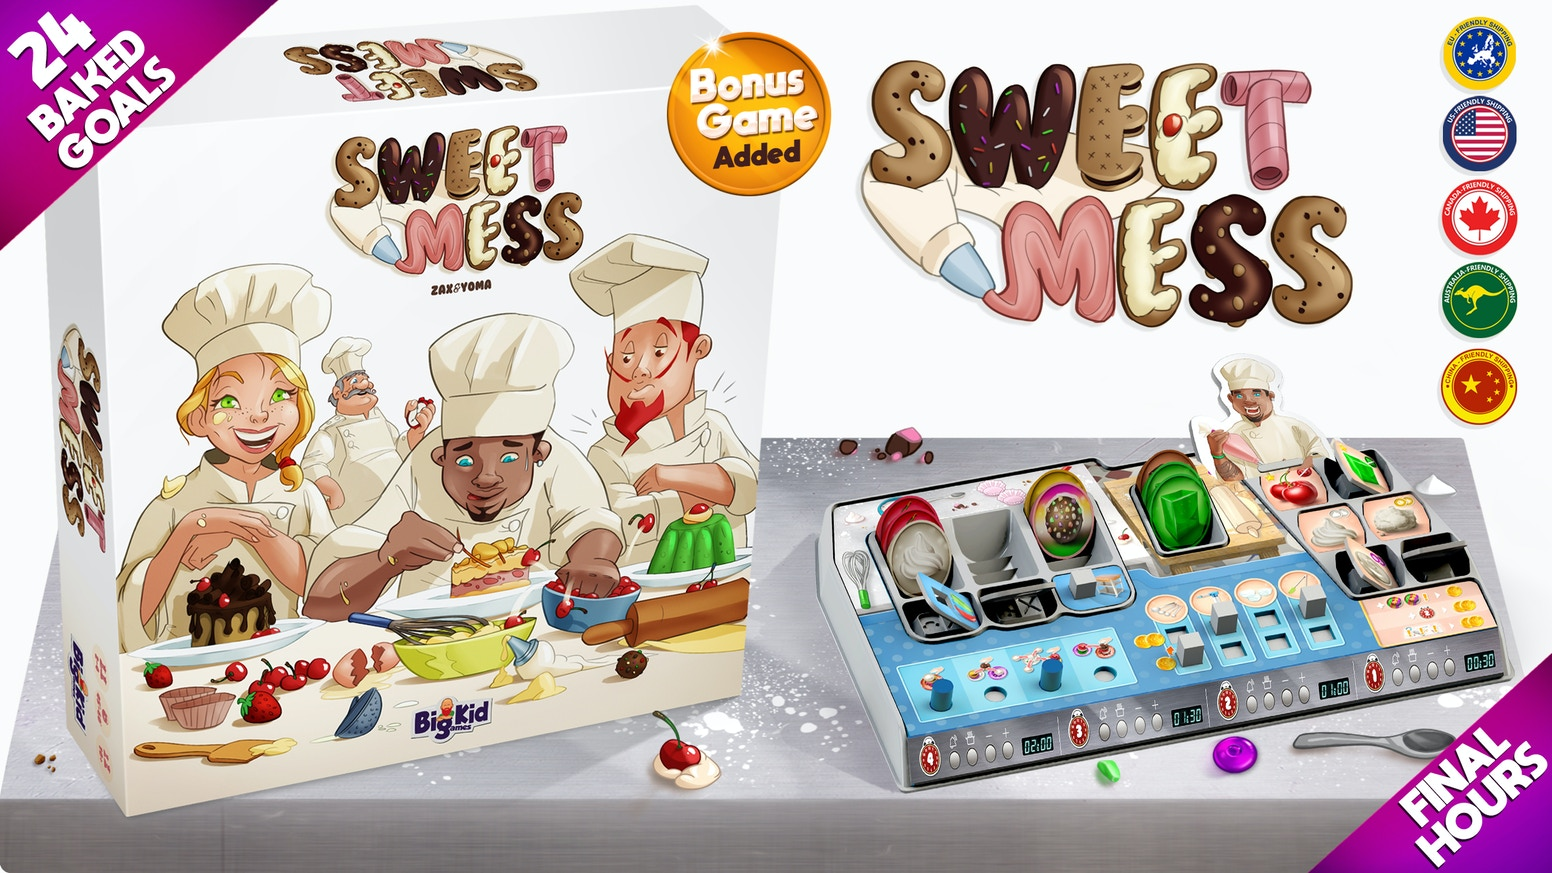 Join the Sweet Mess baking competition this Spring. Coming to a retailer near you.